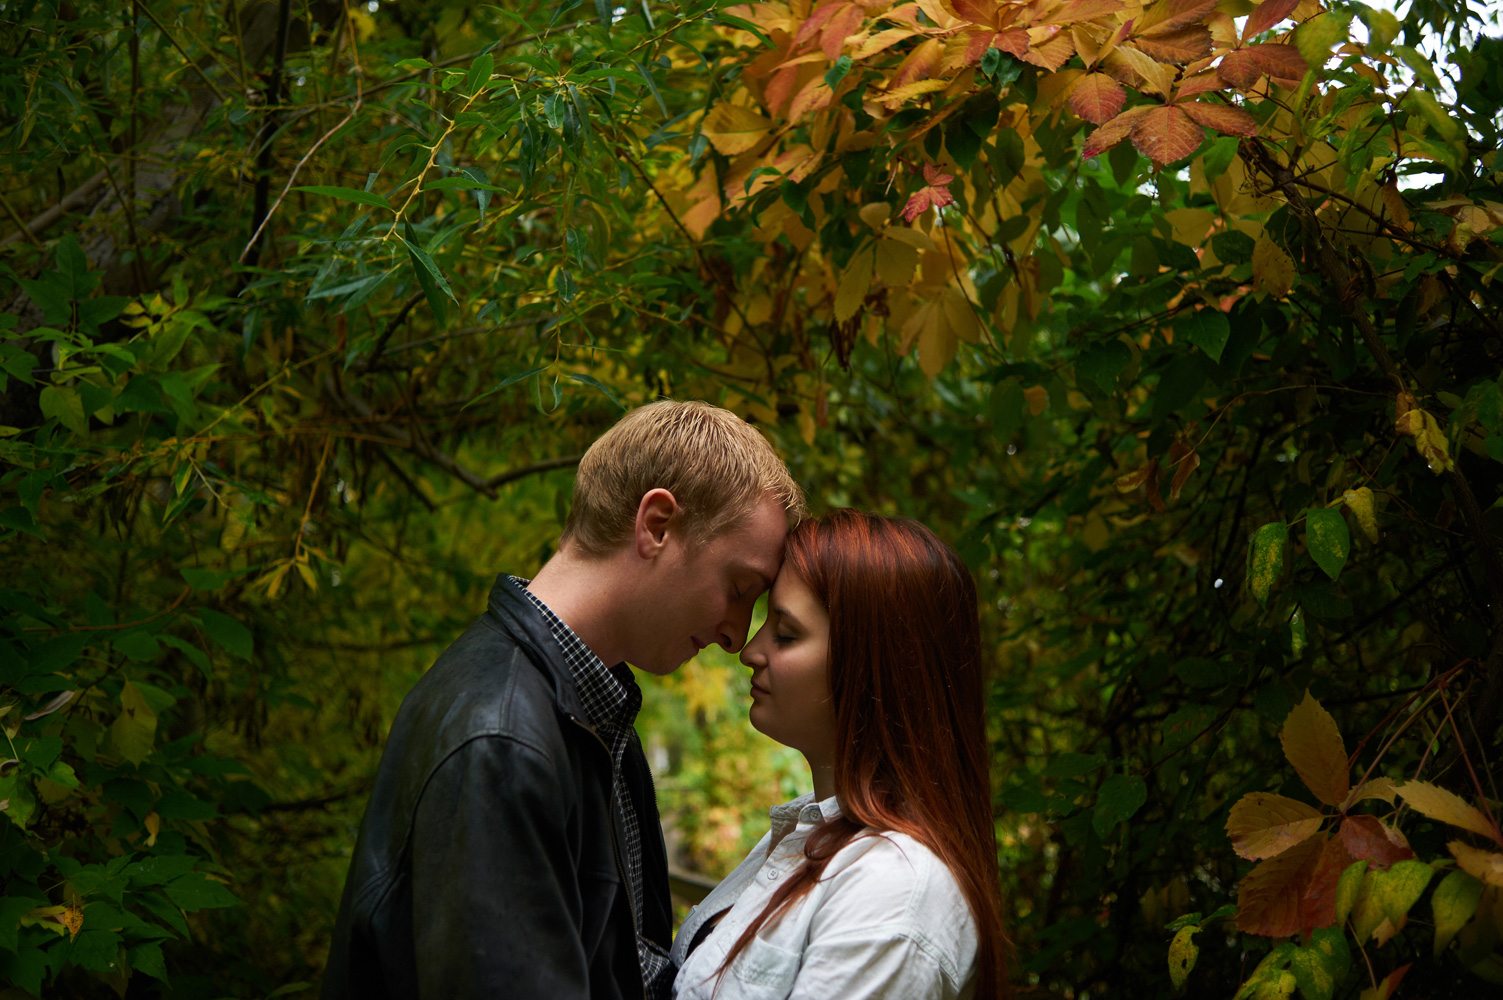 engaged-couple-amongst-colored-leaves-in-fall.jpg